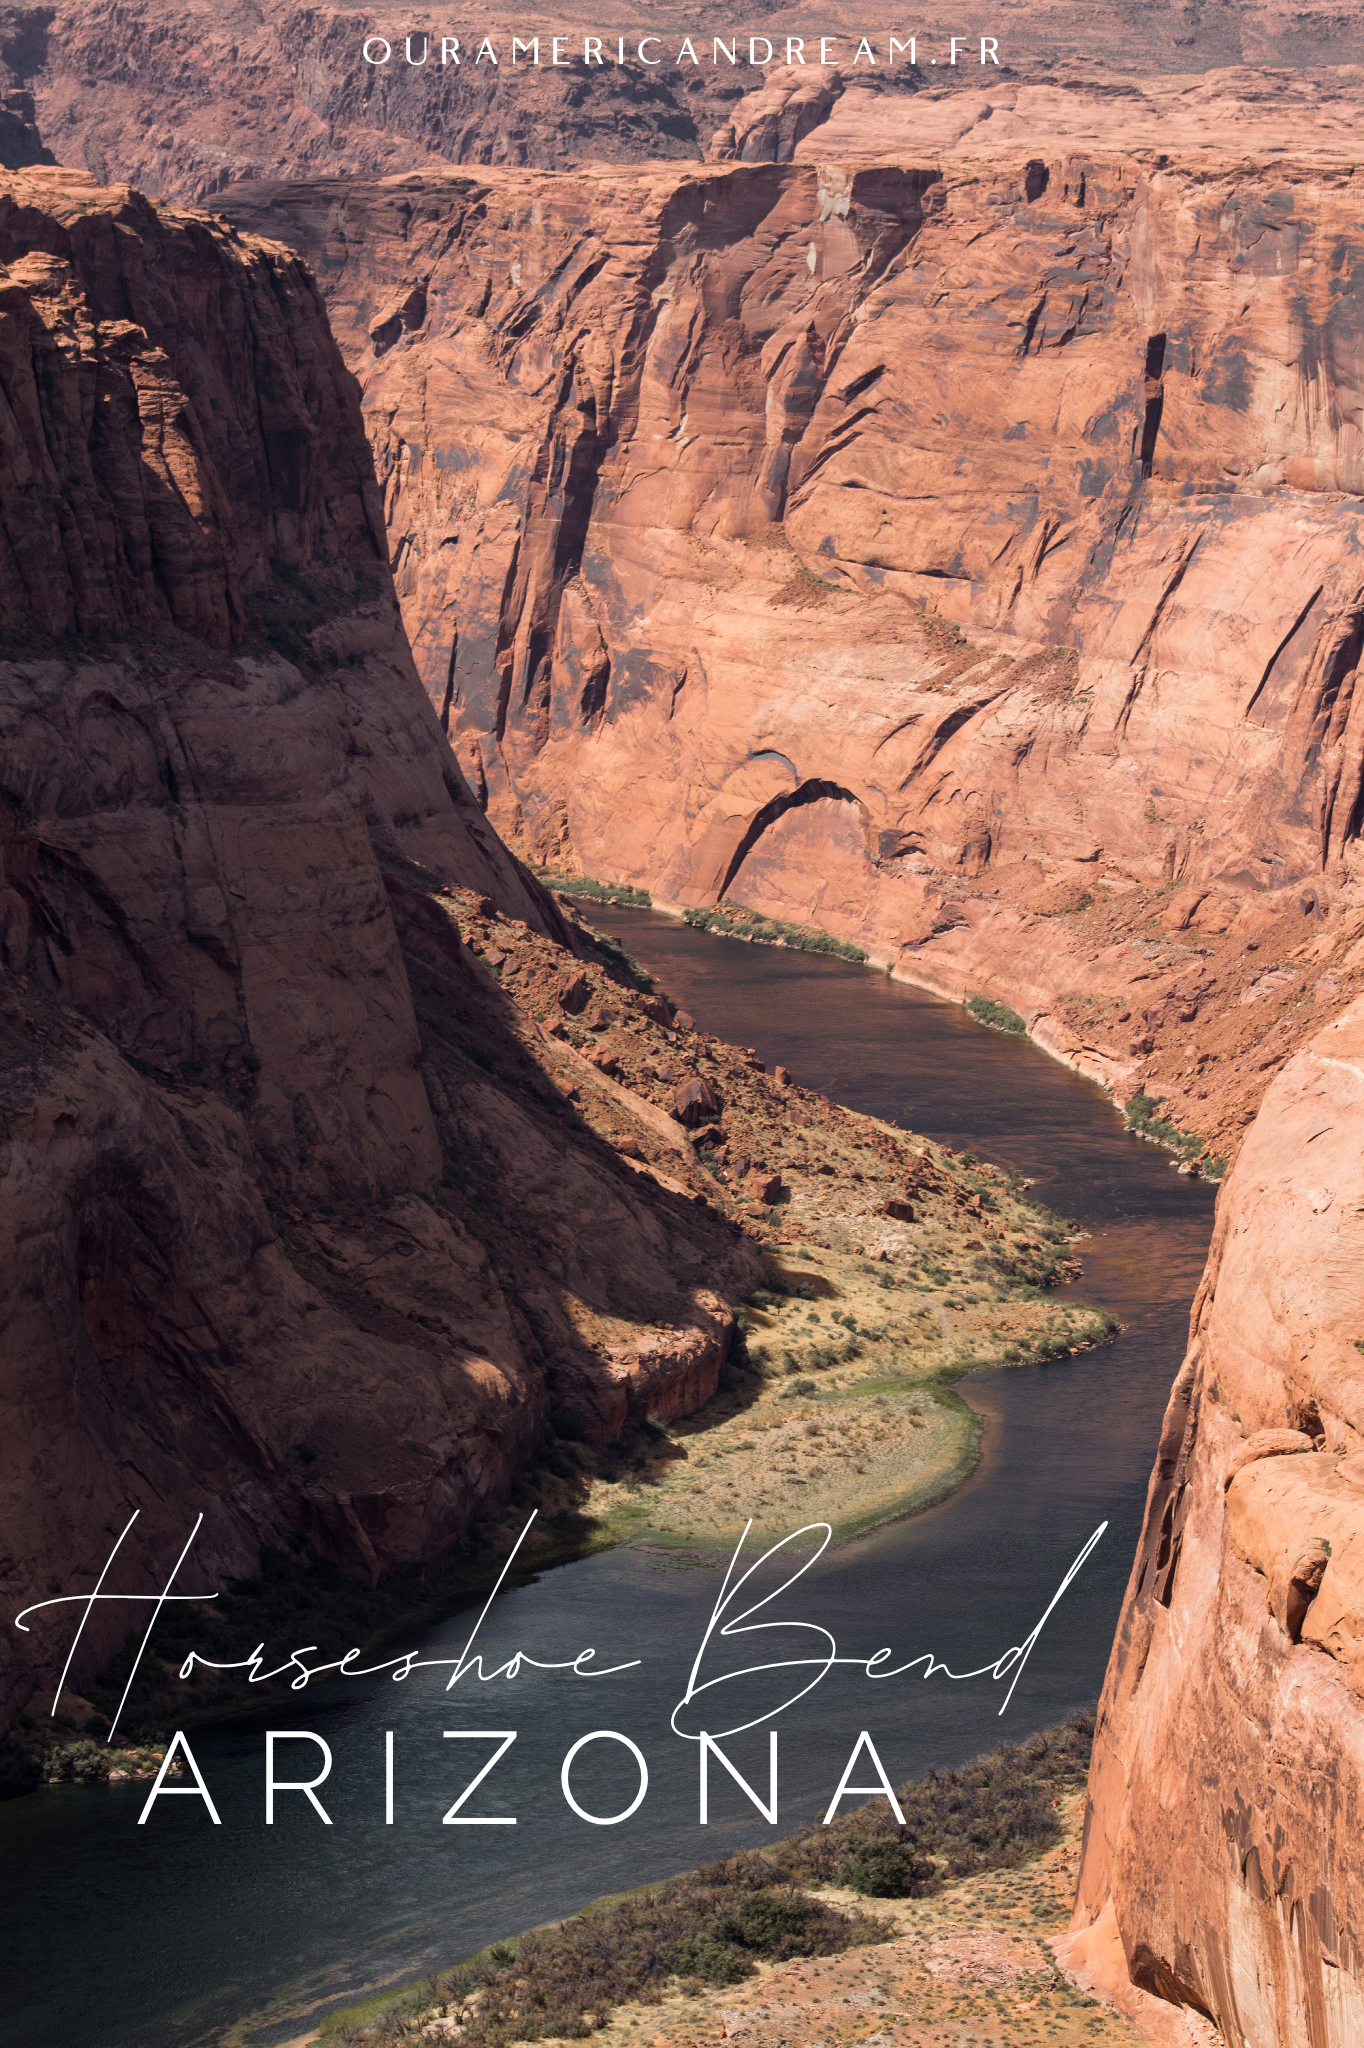 Lac Powell, Antelope Canyon, Horseshoe Bend